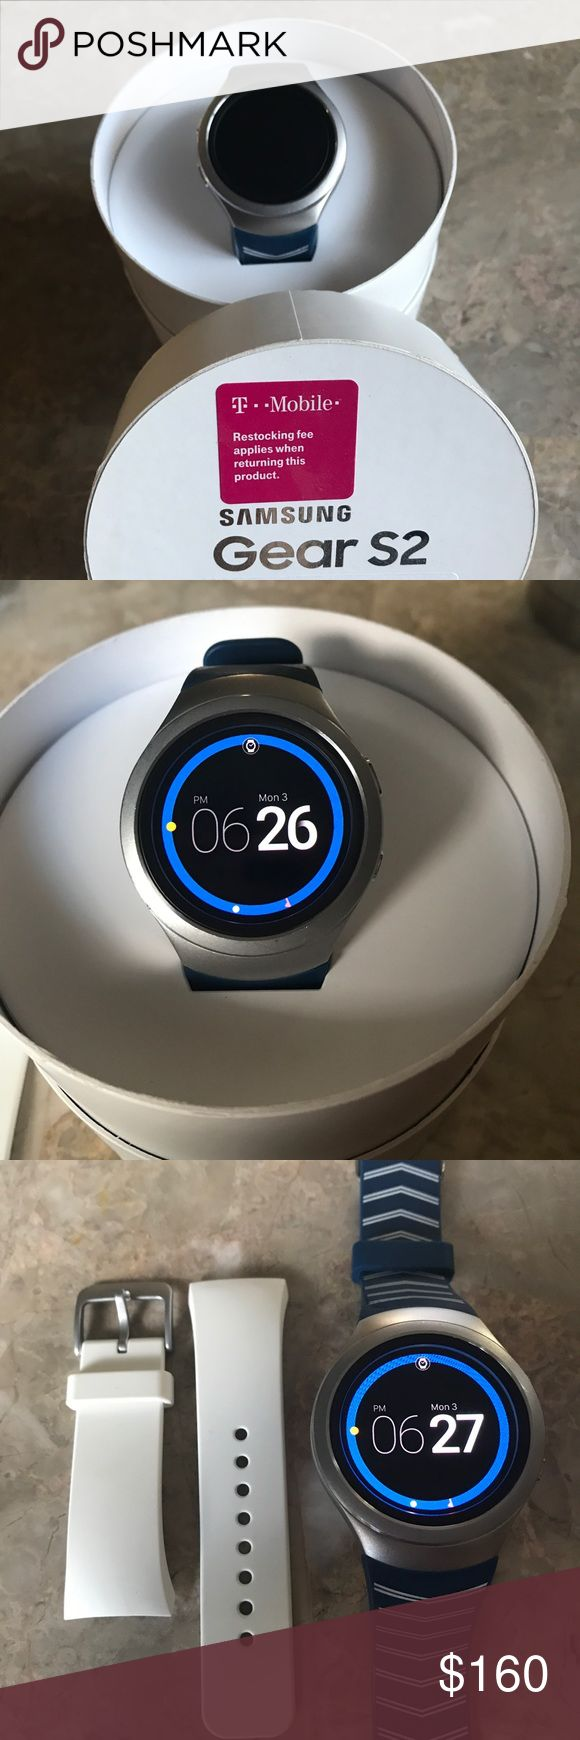 🎉SALE🎉 Samsung gear 2 smart watch!!!! 📱In great condition with additional white band . This watch is for use on T-Mobiles network or can be used with just Bluetooth on any smart phone . 📱 Accessories Watches